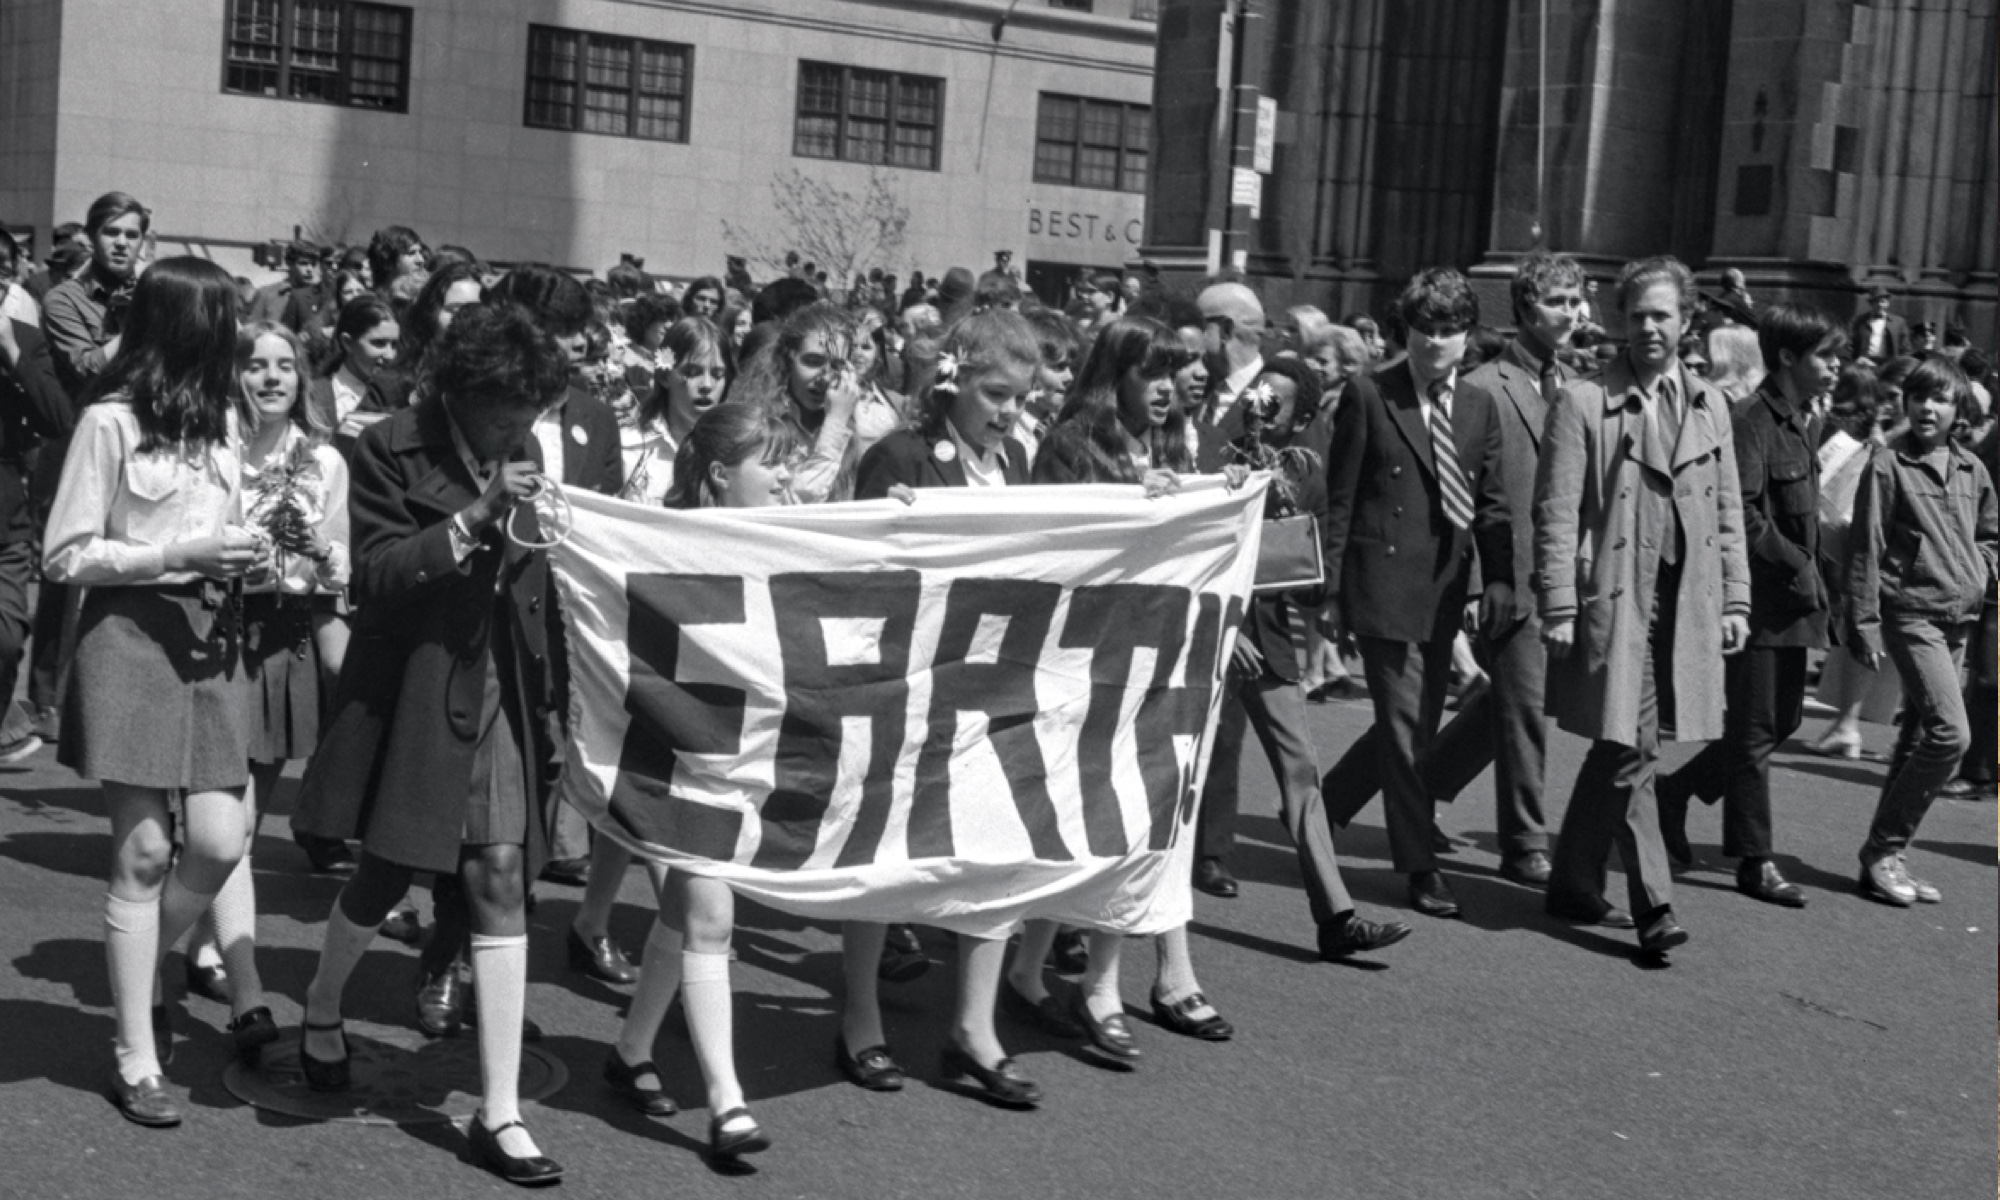 Protestors at Earth Day demonstrations, April 22nd 1970.